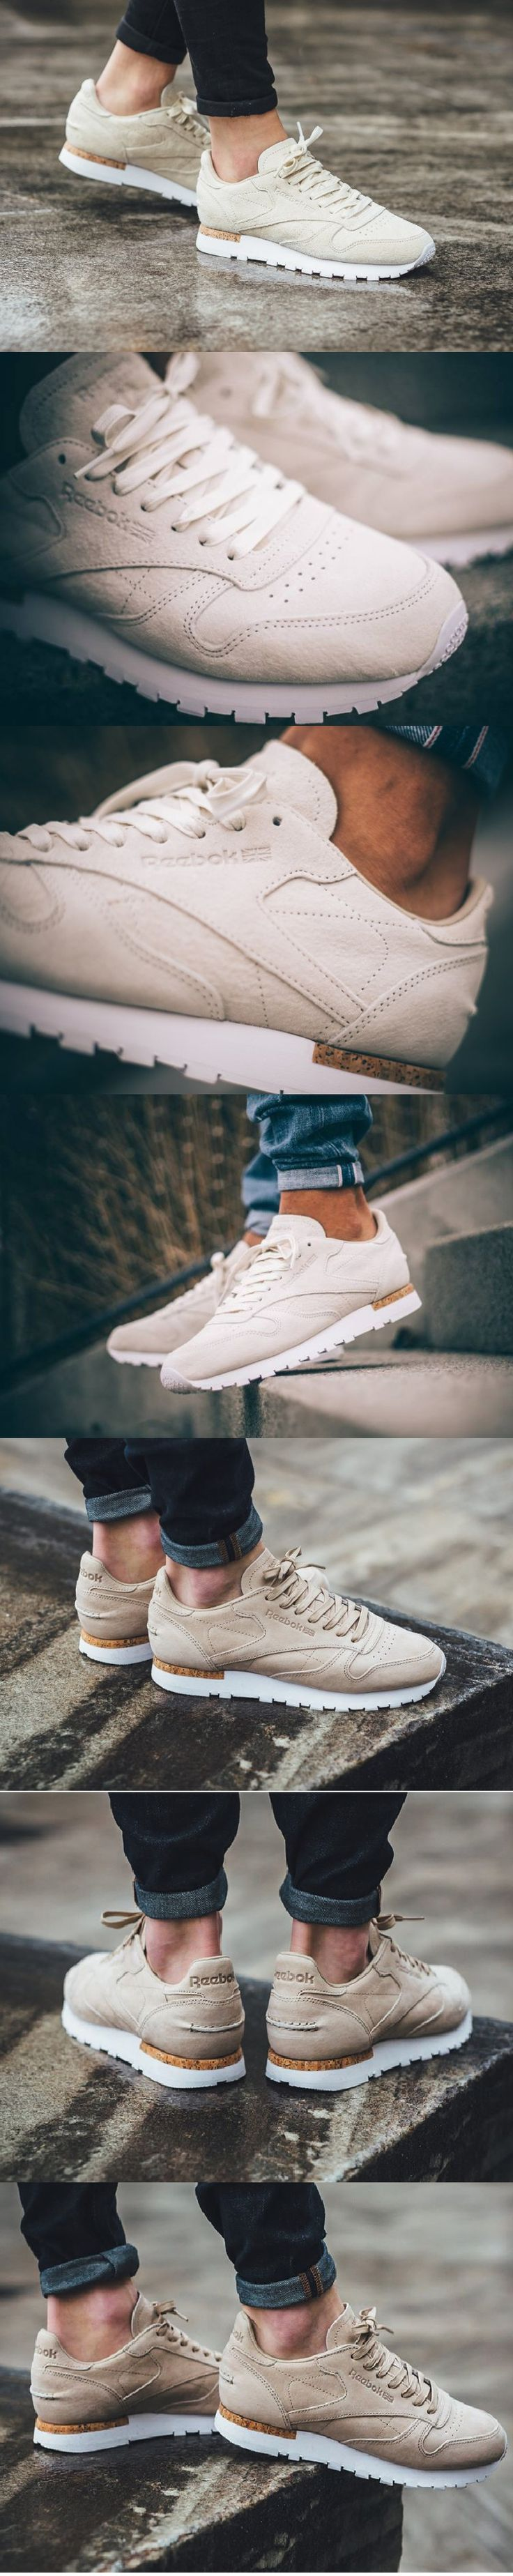 #Reebok #Classic #Leather #LST #Suede #White & #Oatmeal